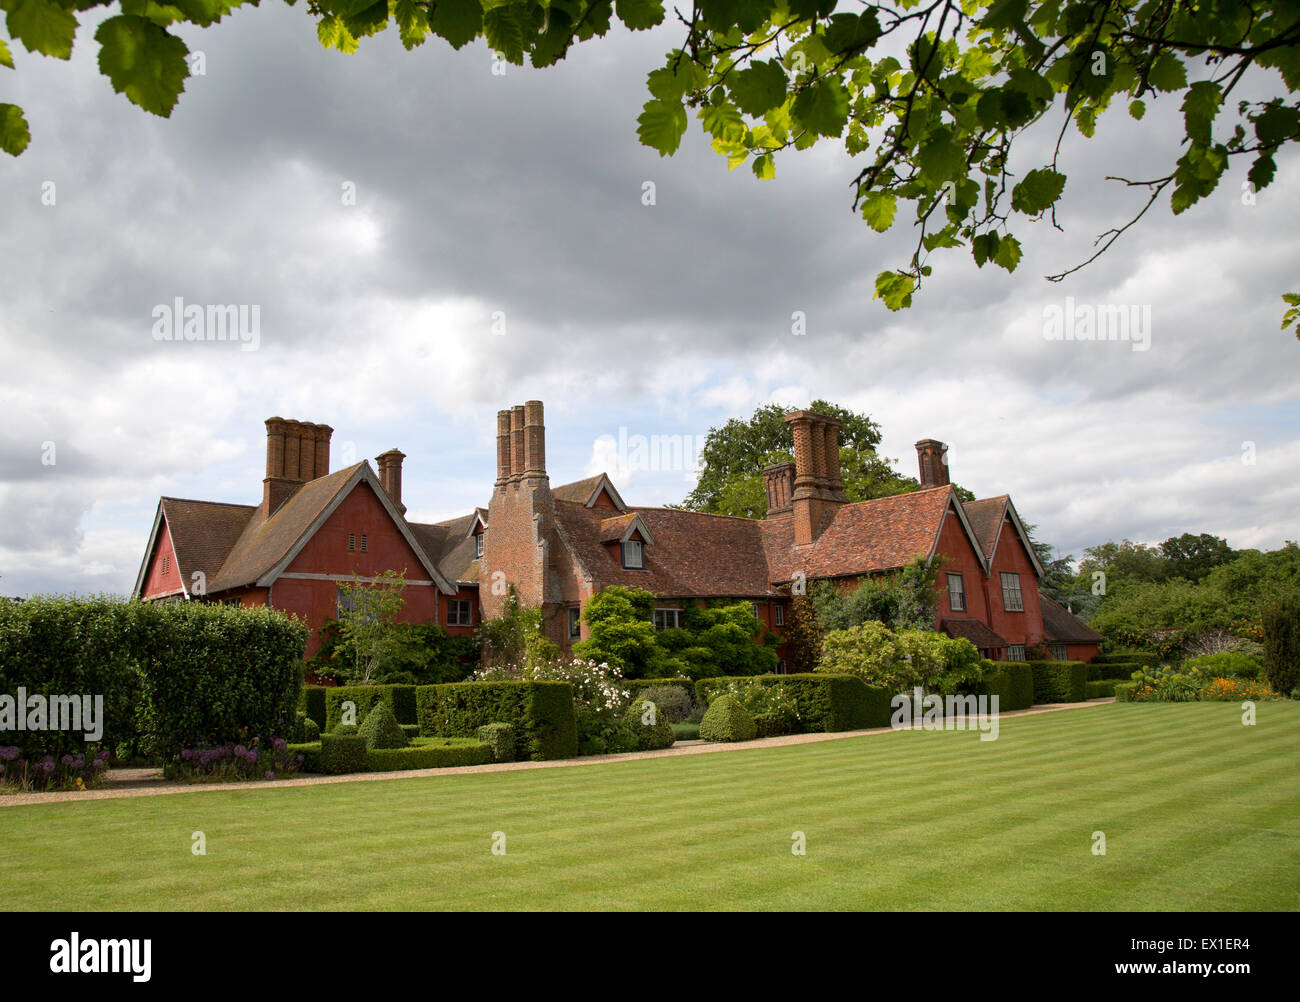 Wyken Hall house and gardens, Suffolk, England, UK - Stock Image